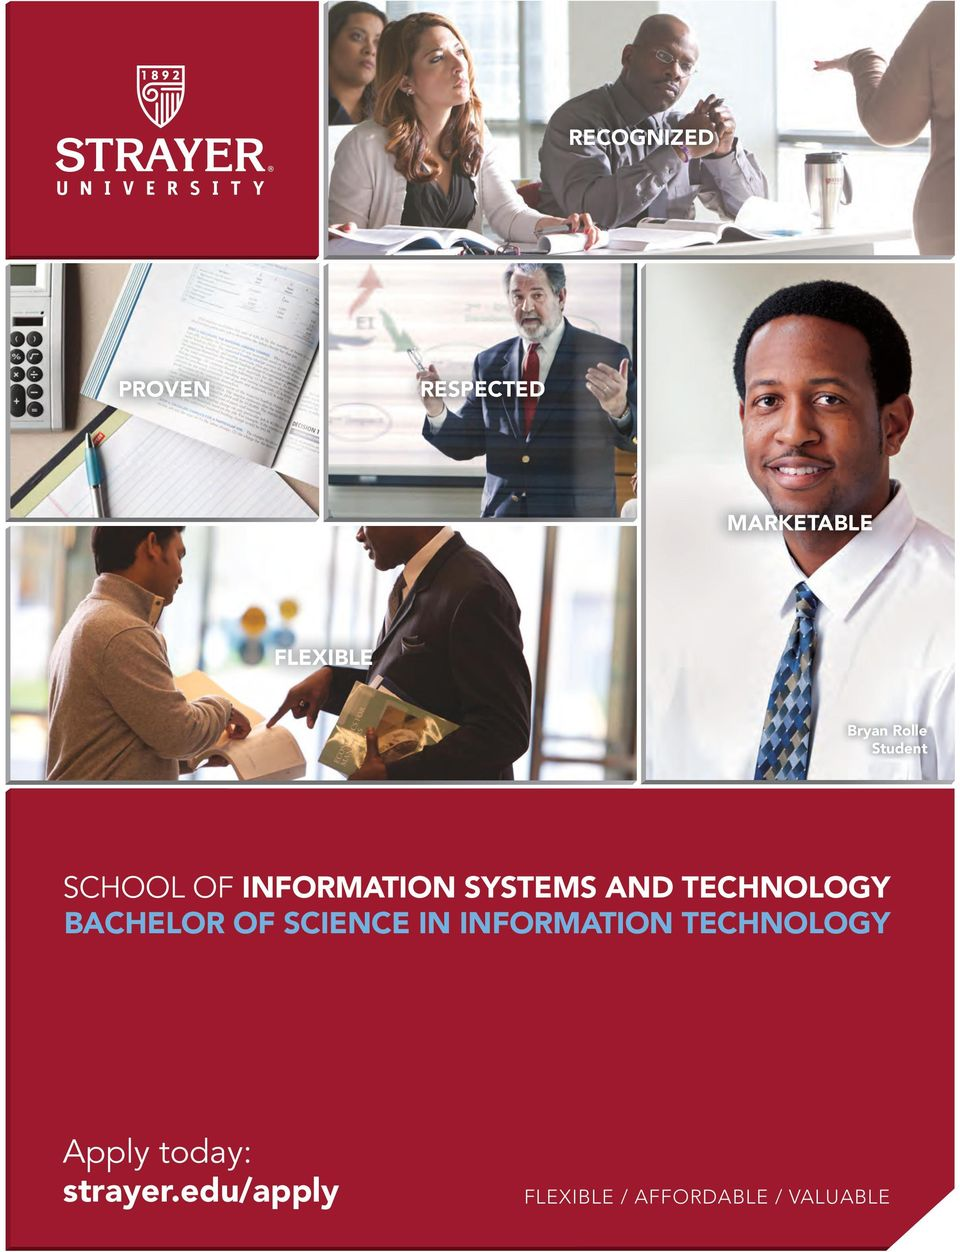 TECHNOLOGY BACHELOR OF SCIENCE IN INFORMATION